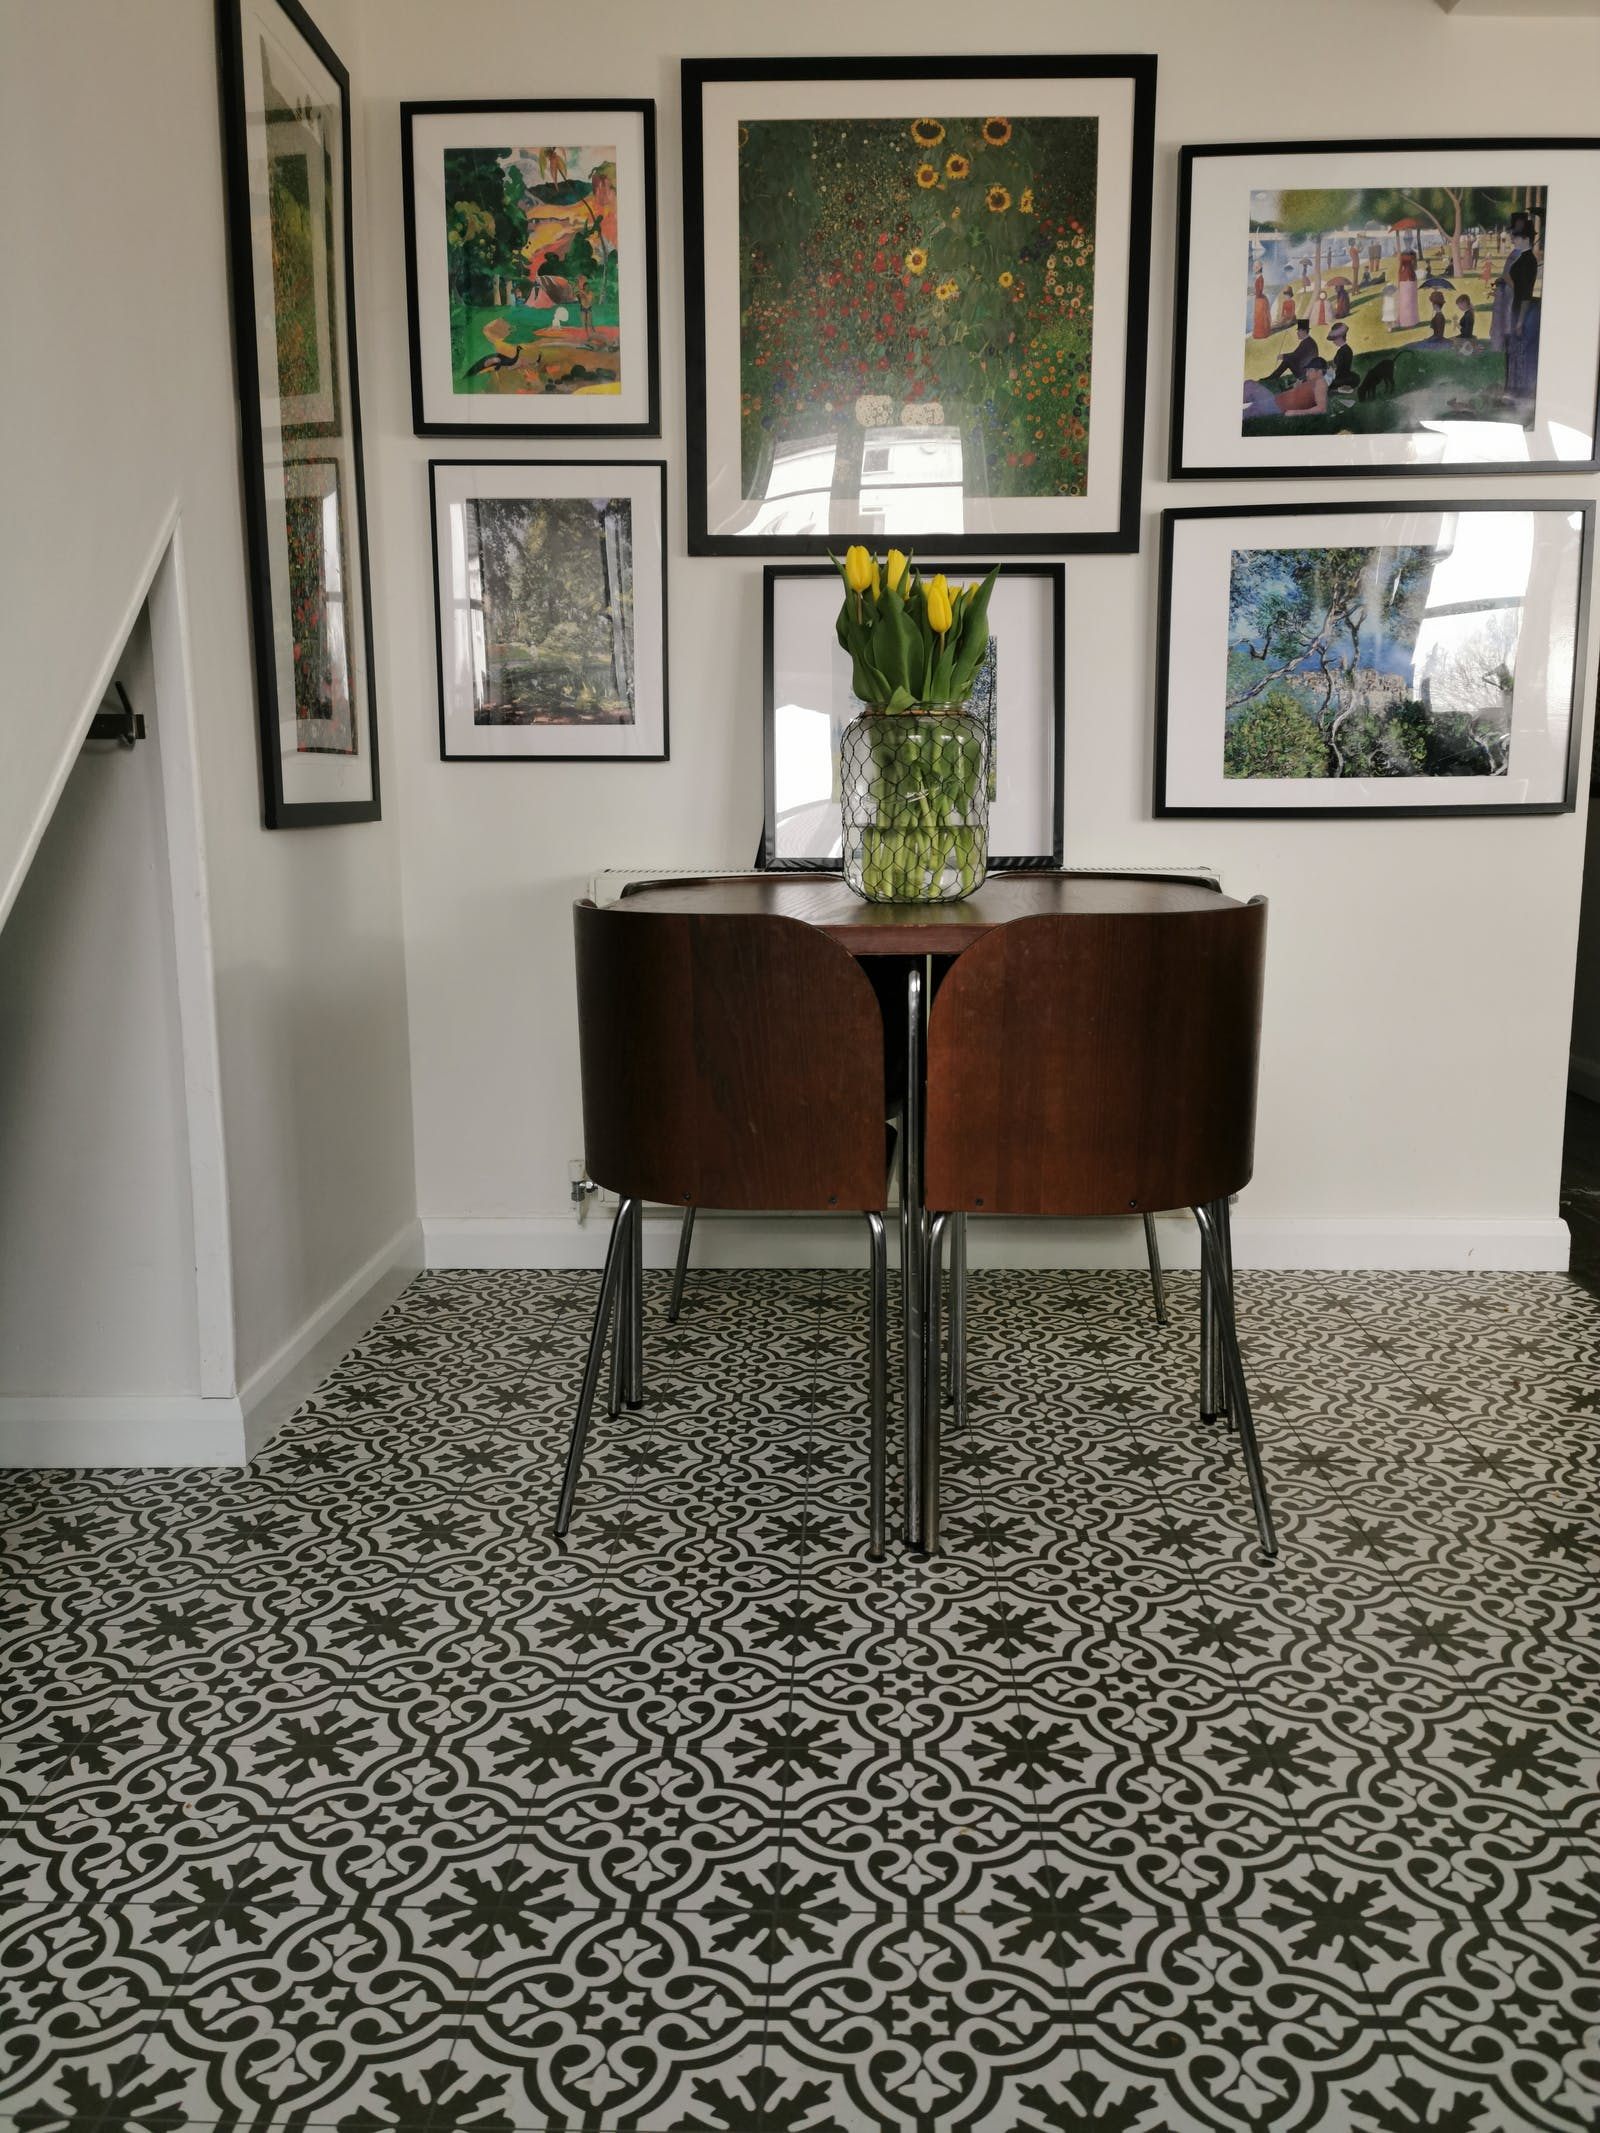 hallway with patterned carpet and a vintage wooden table